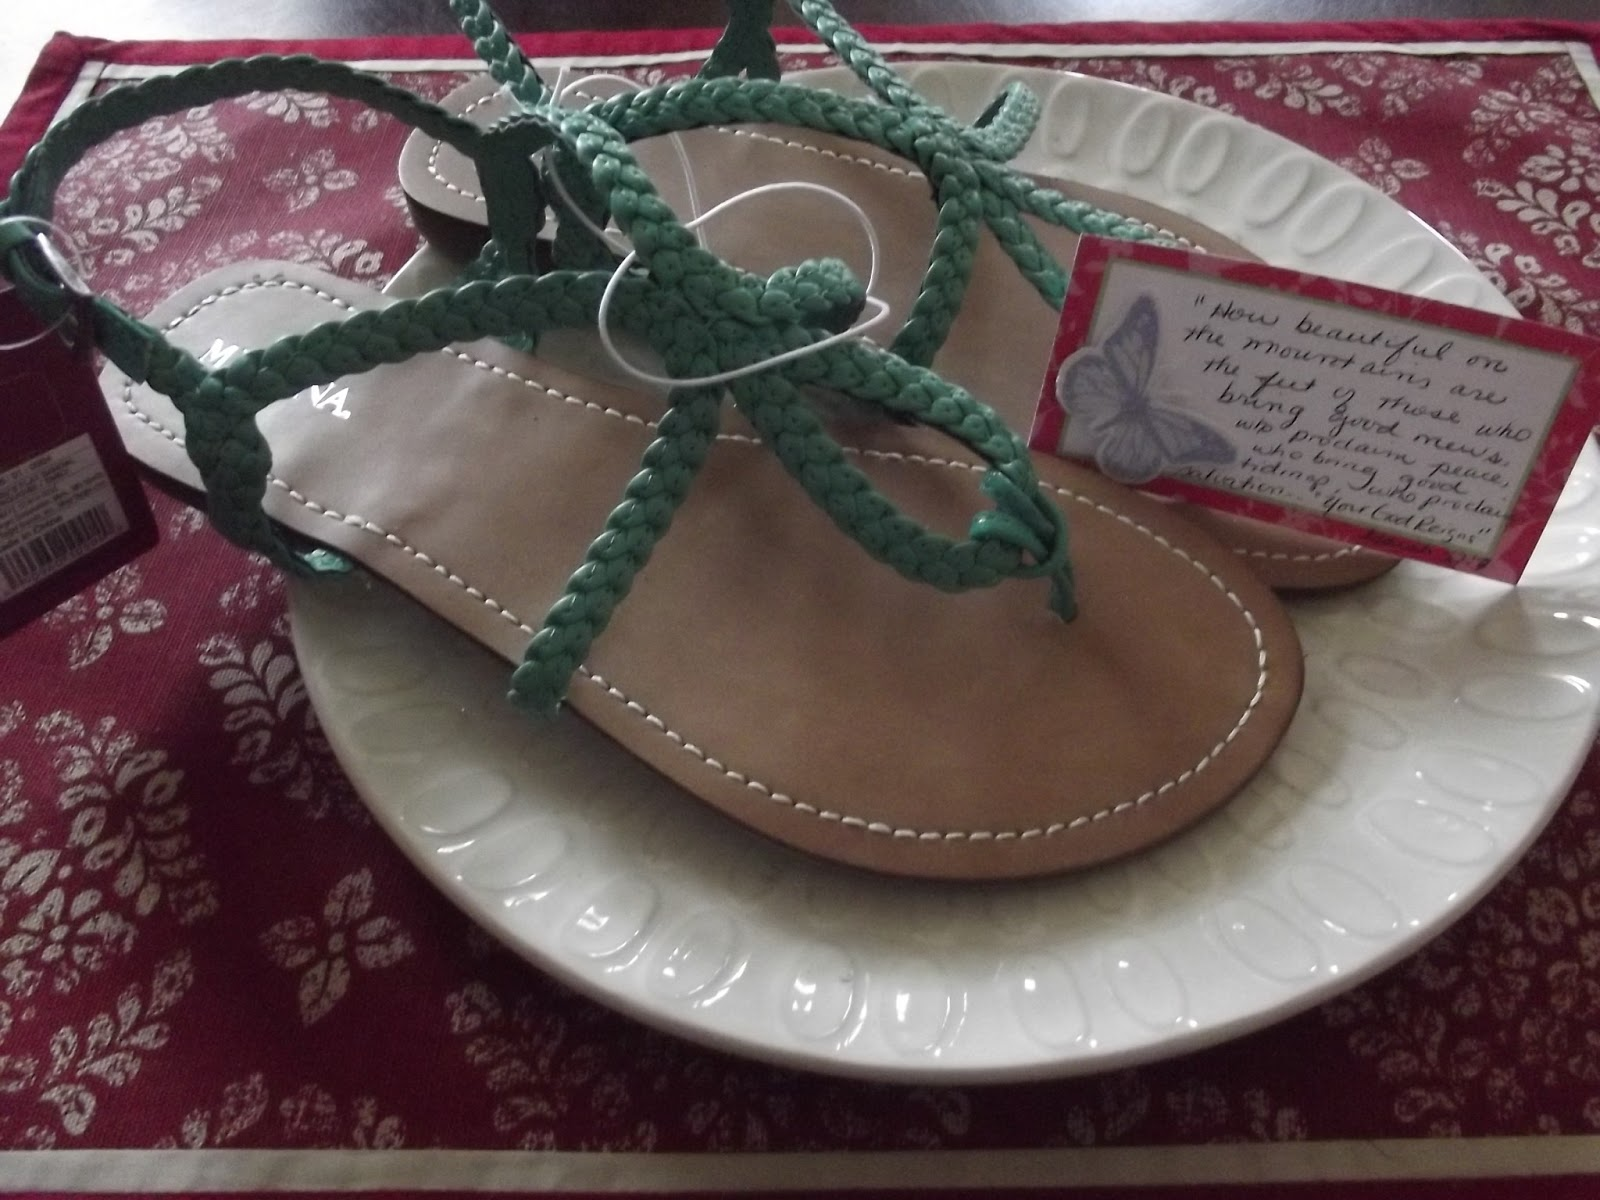 13 And My Last Gift Was A Pair Of Sandals That She Really Wanted I Tied